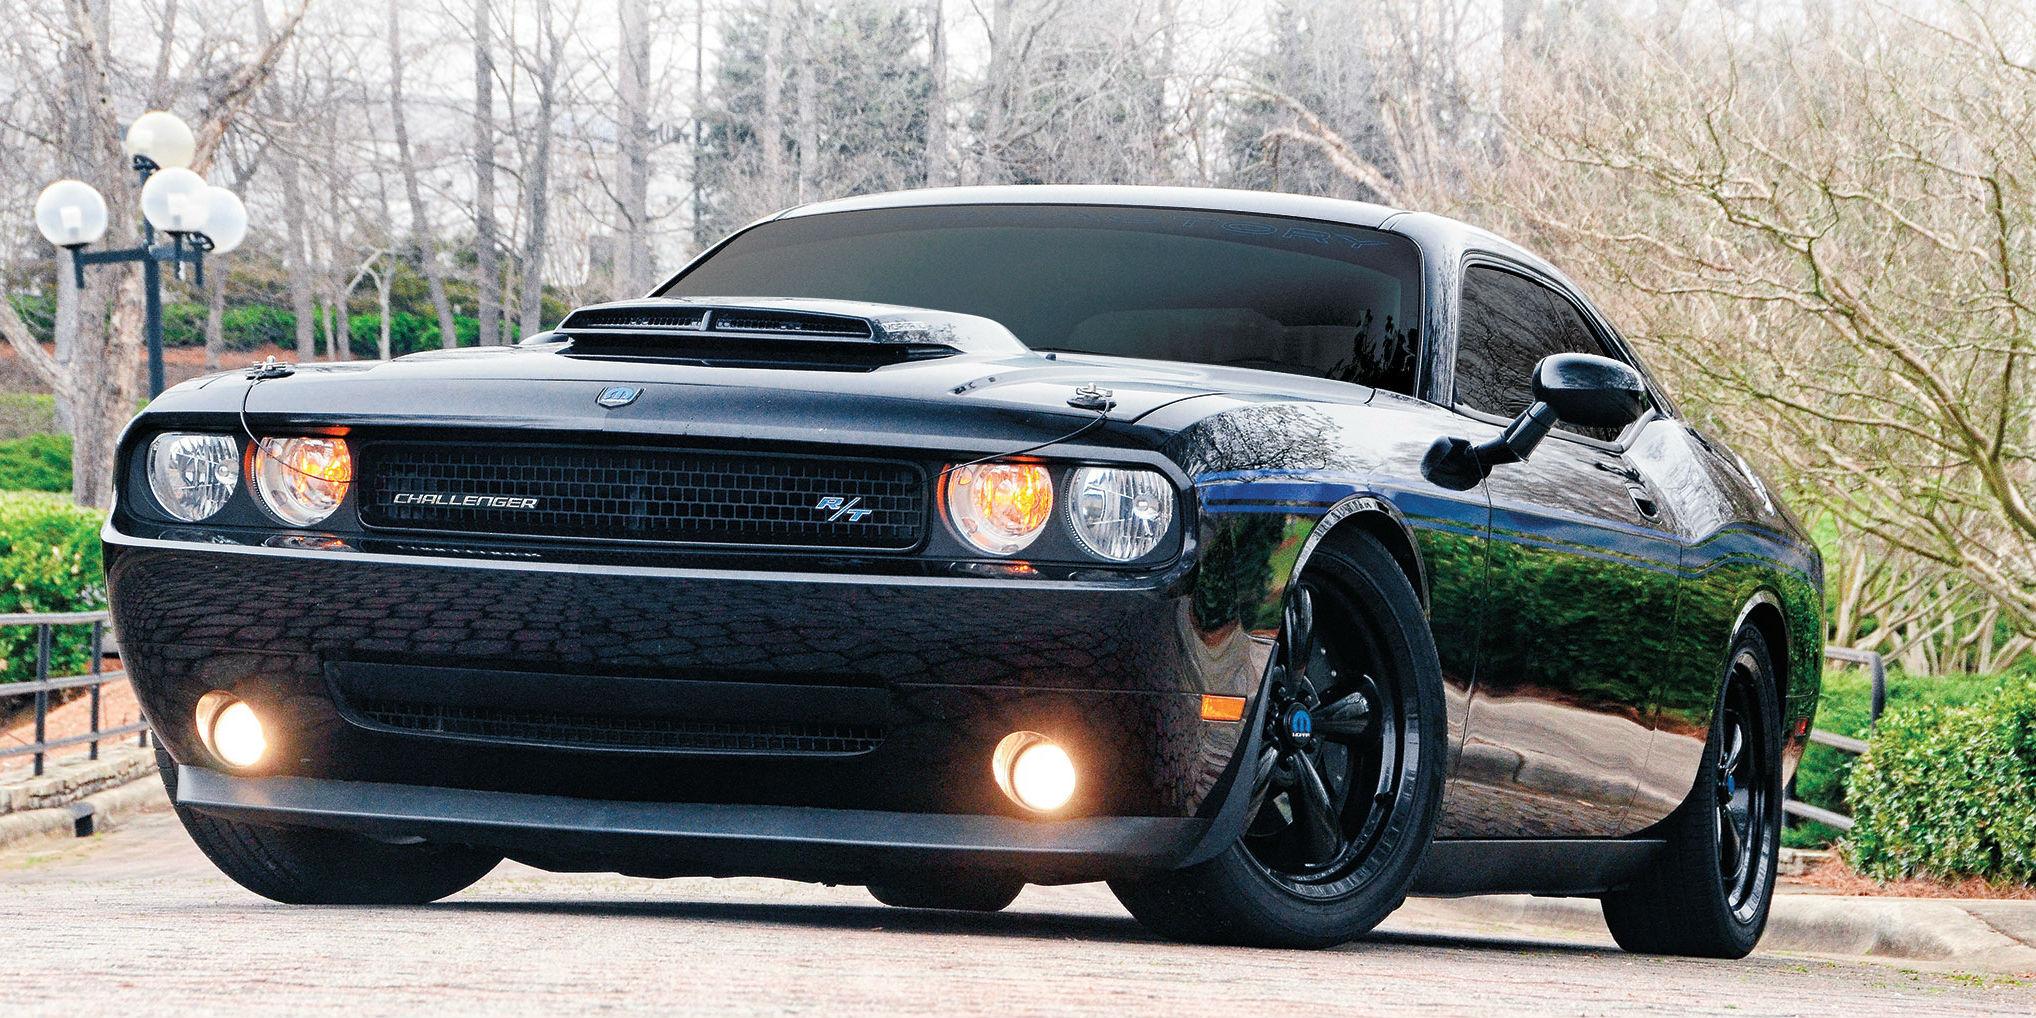 2010 mopar dodge challenger mixture of mopar performance parts custom touches t a type. Black Bedroom Furniture Sets. Home Design Ideas